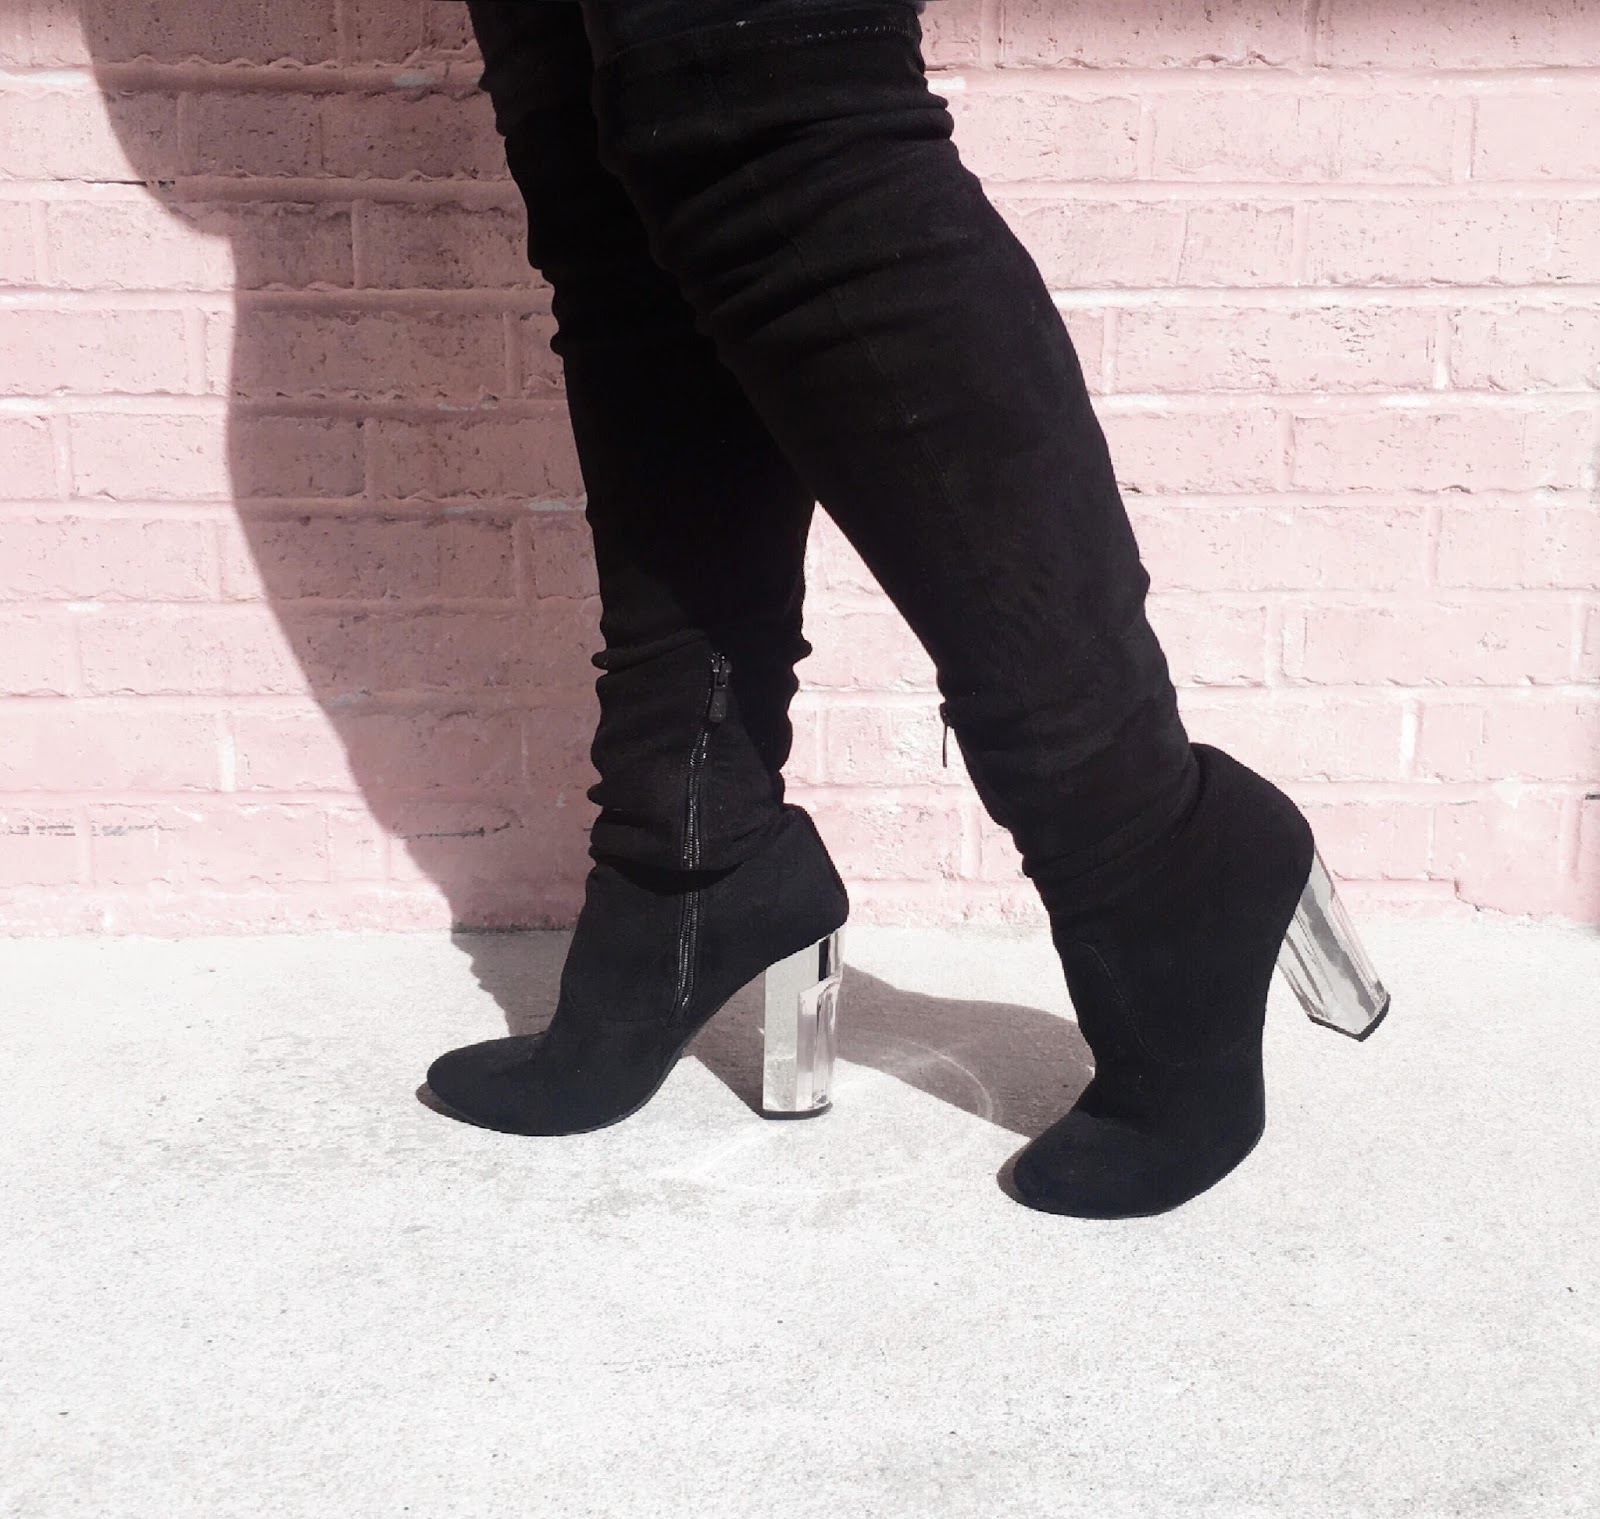 7a022eaef42 Shoe Shopping : Public Desire - Cop My Fav Heels! | DollHaus Beauty